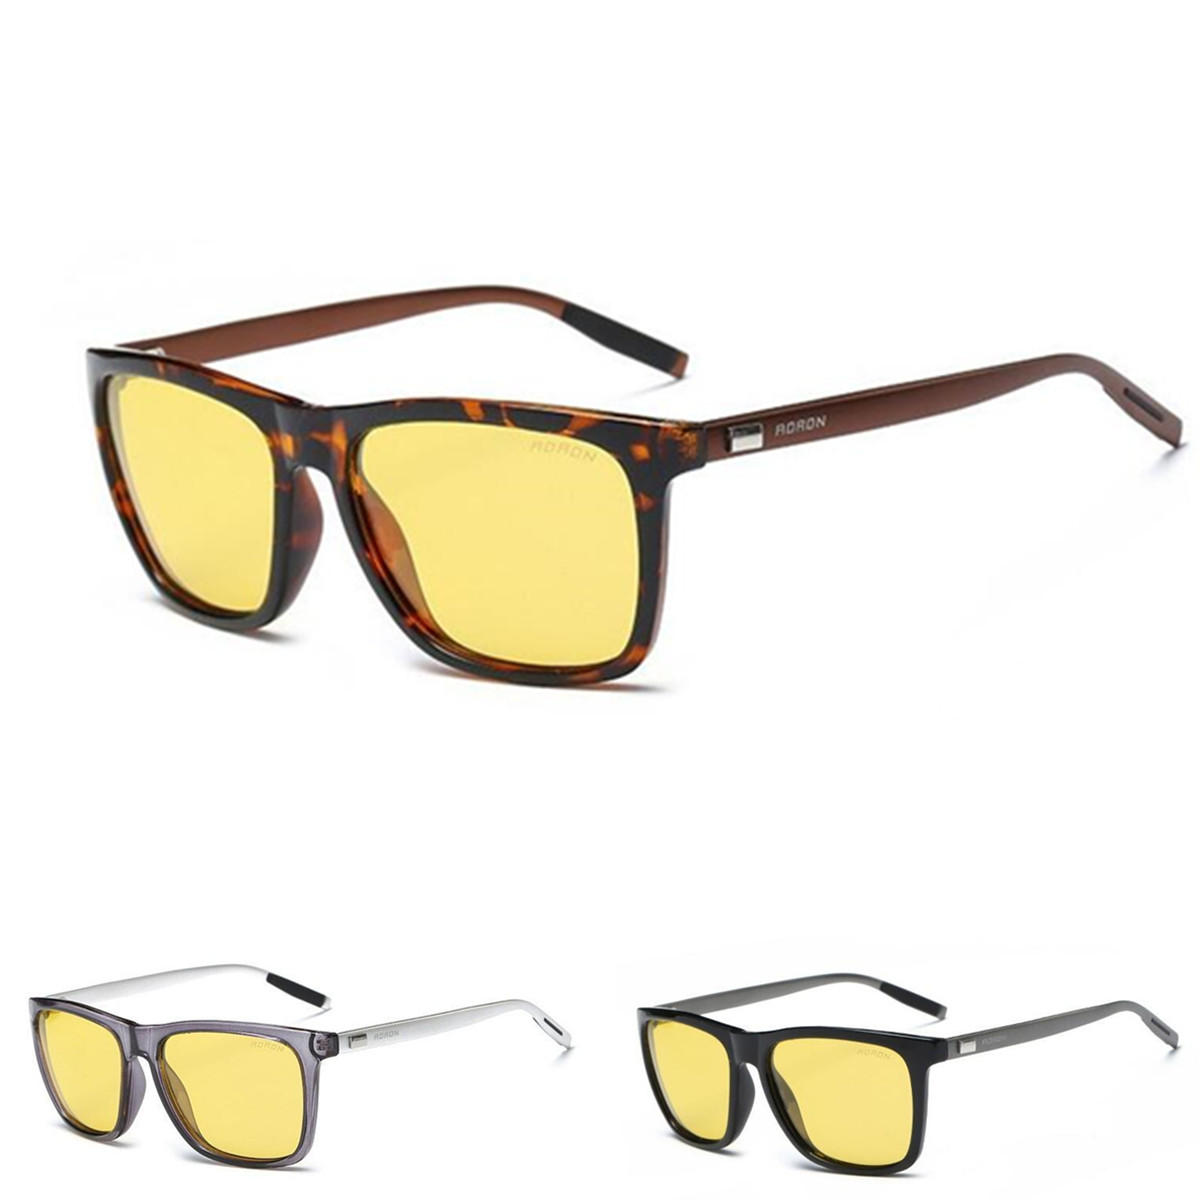 41d034c331d761 AORON Aluminium Men Polarized Driving Sunglasses Glasses Night Vision  Anti-Glare Lens